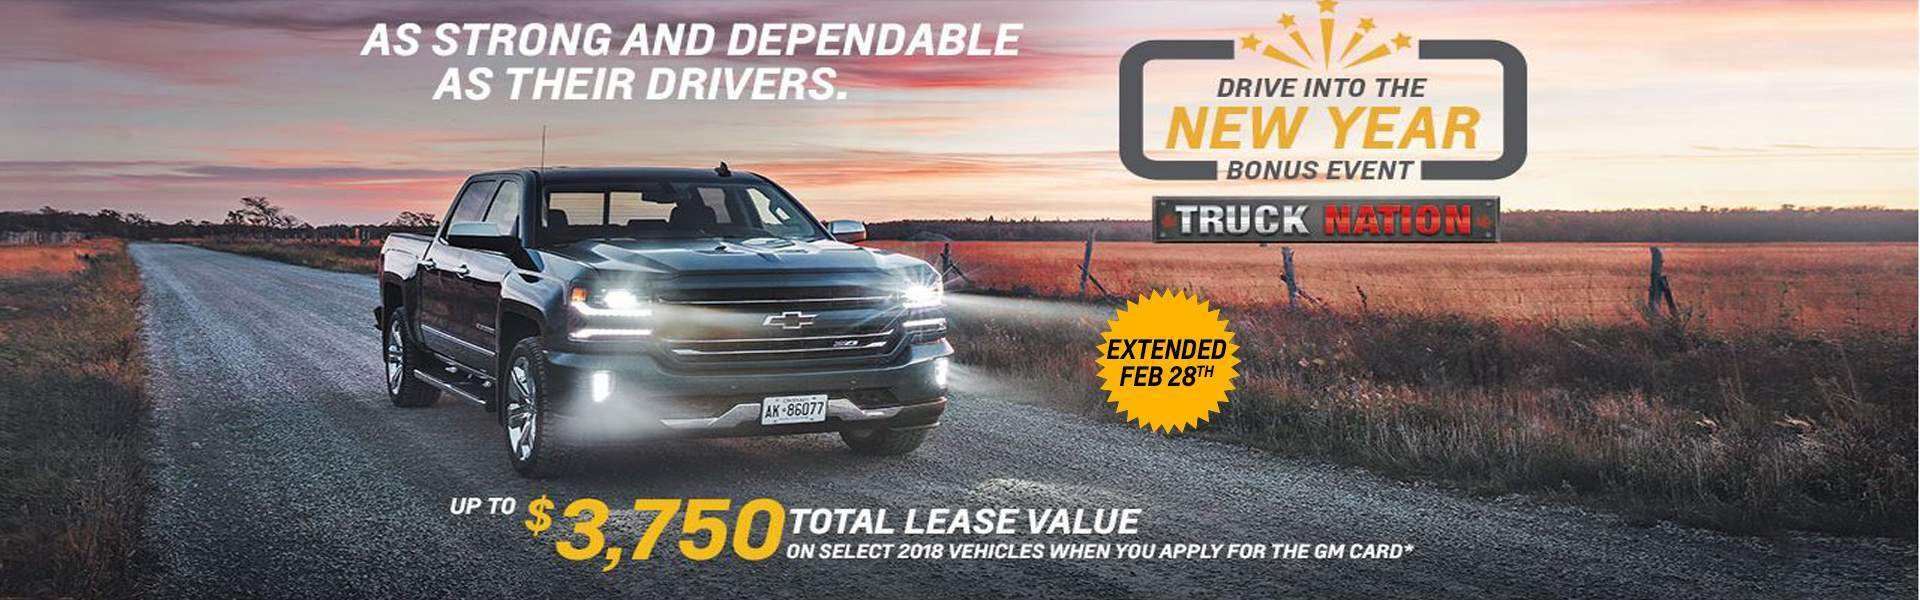 Chevy Lease Jan 2018